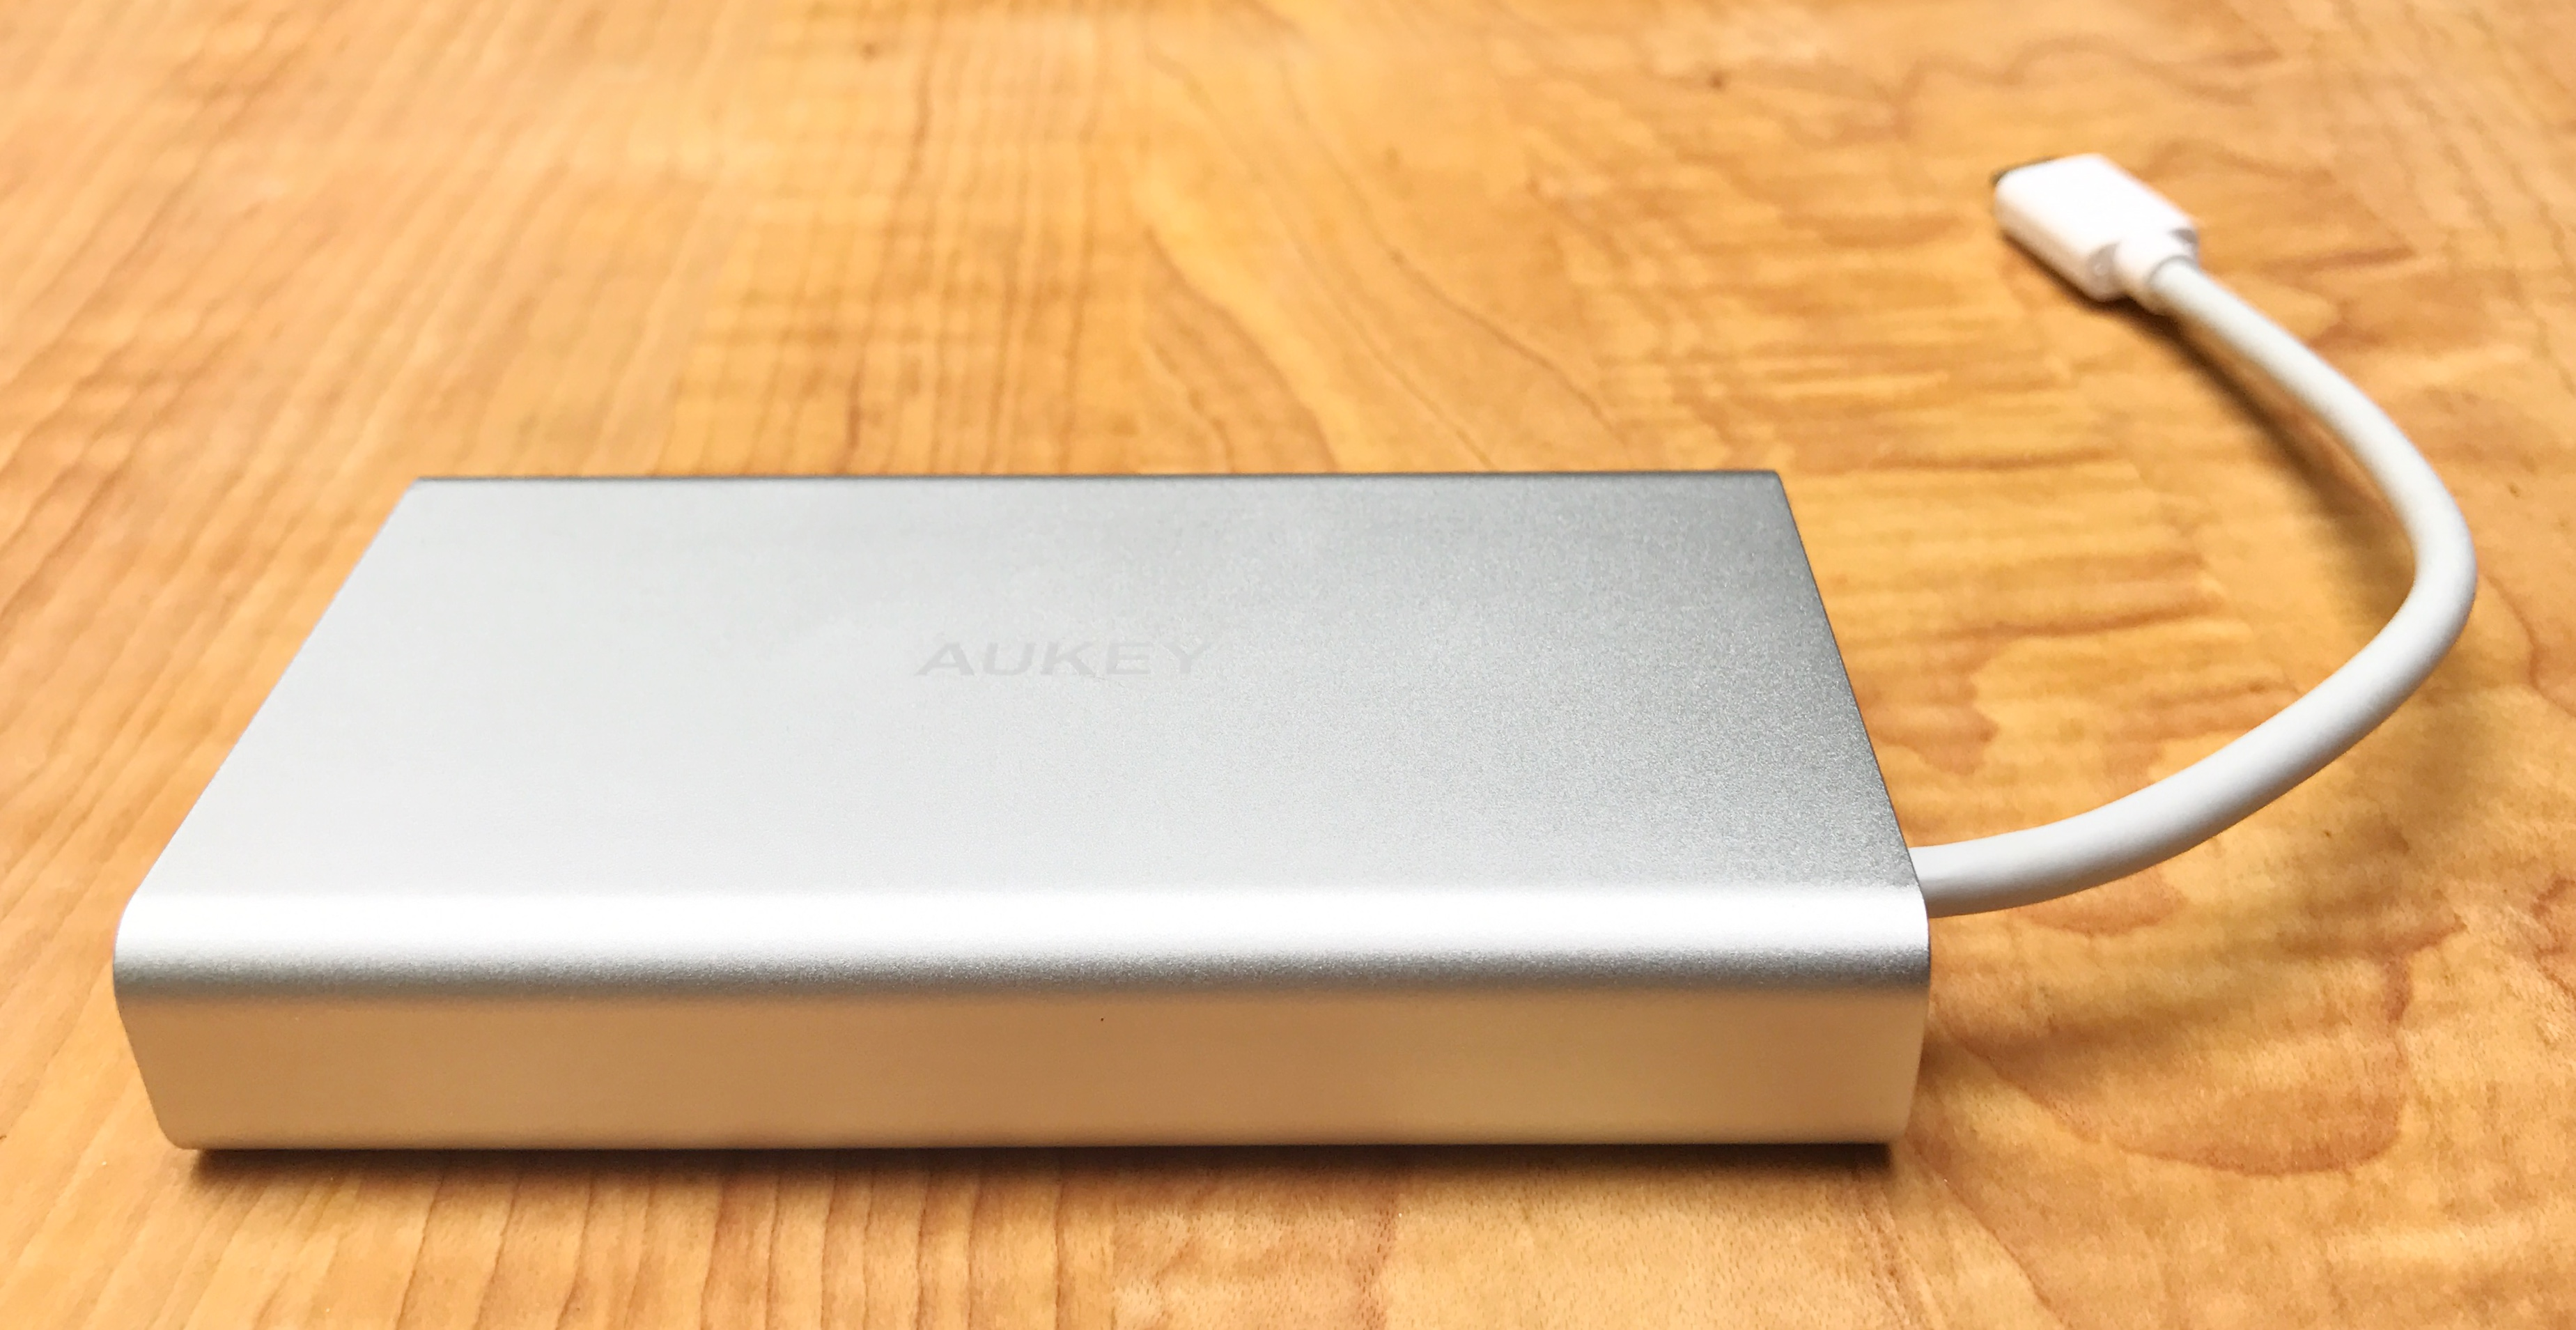 AUKEY USB-C Hub Review: Add a Monitor, Ethernet, and More ...